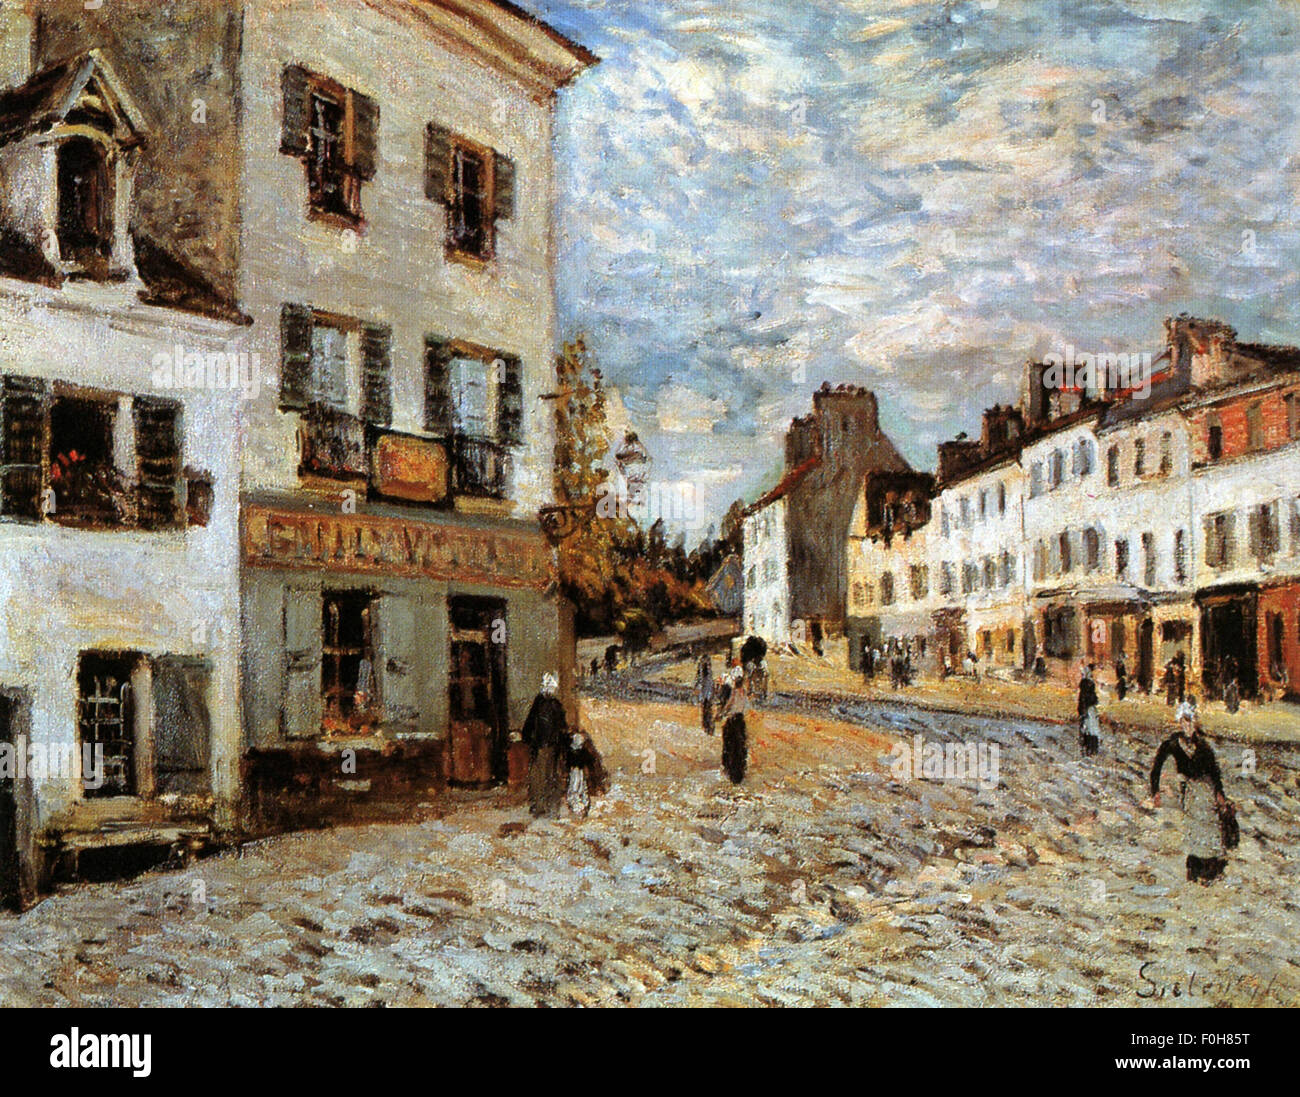 Alfred Sisley - Place du Marché à Marly - Stock Image